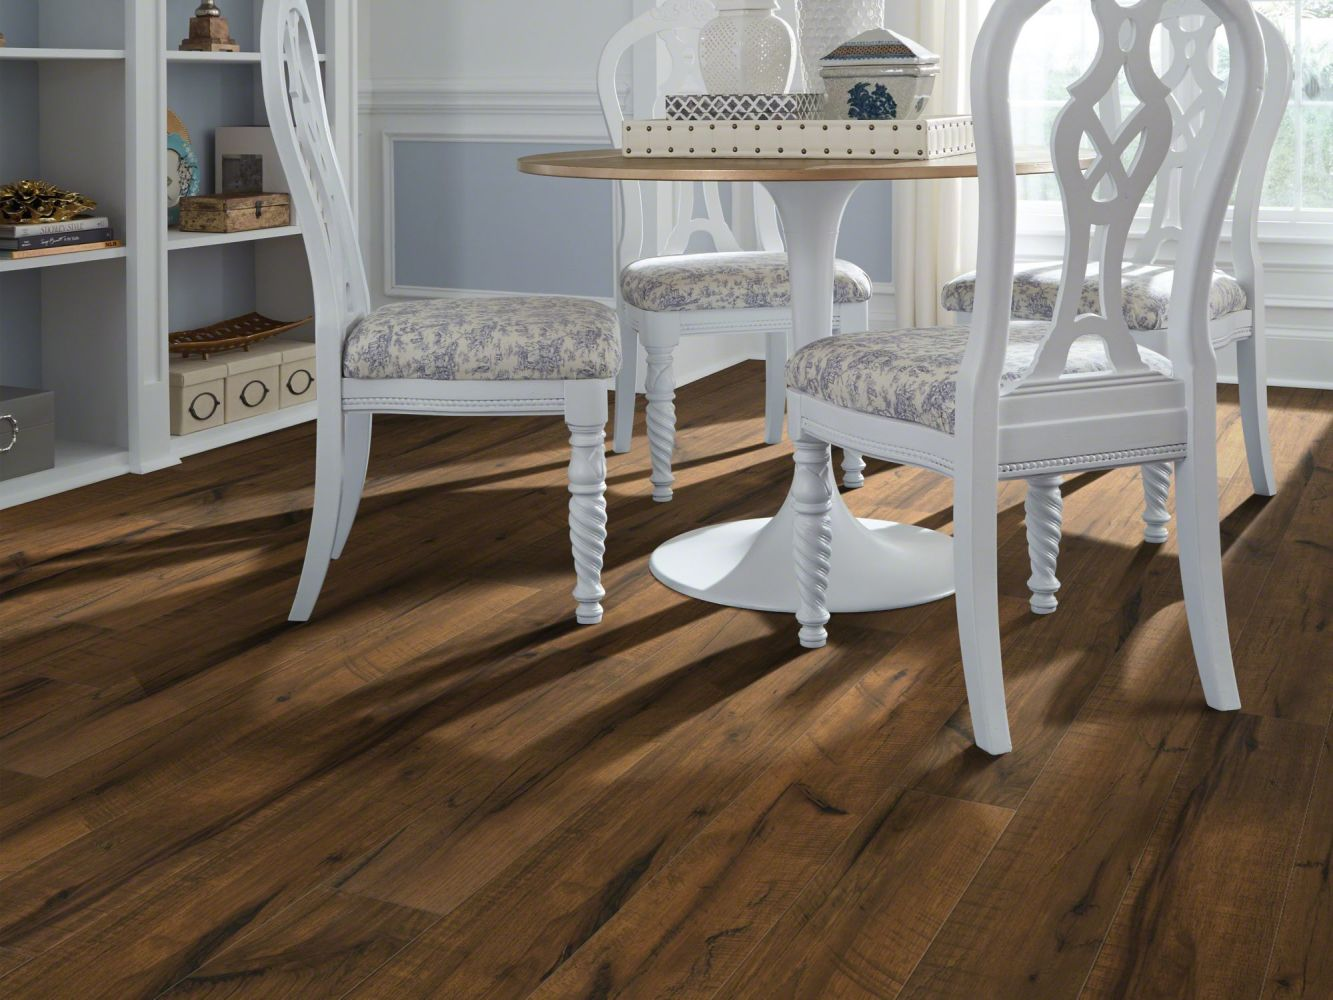 Shaw Floors Home Fn Gold Laminate Treasure Cove Auburn Hickory 07012_HL378